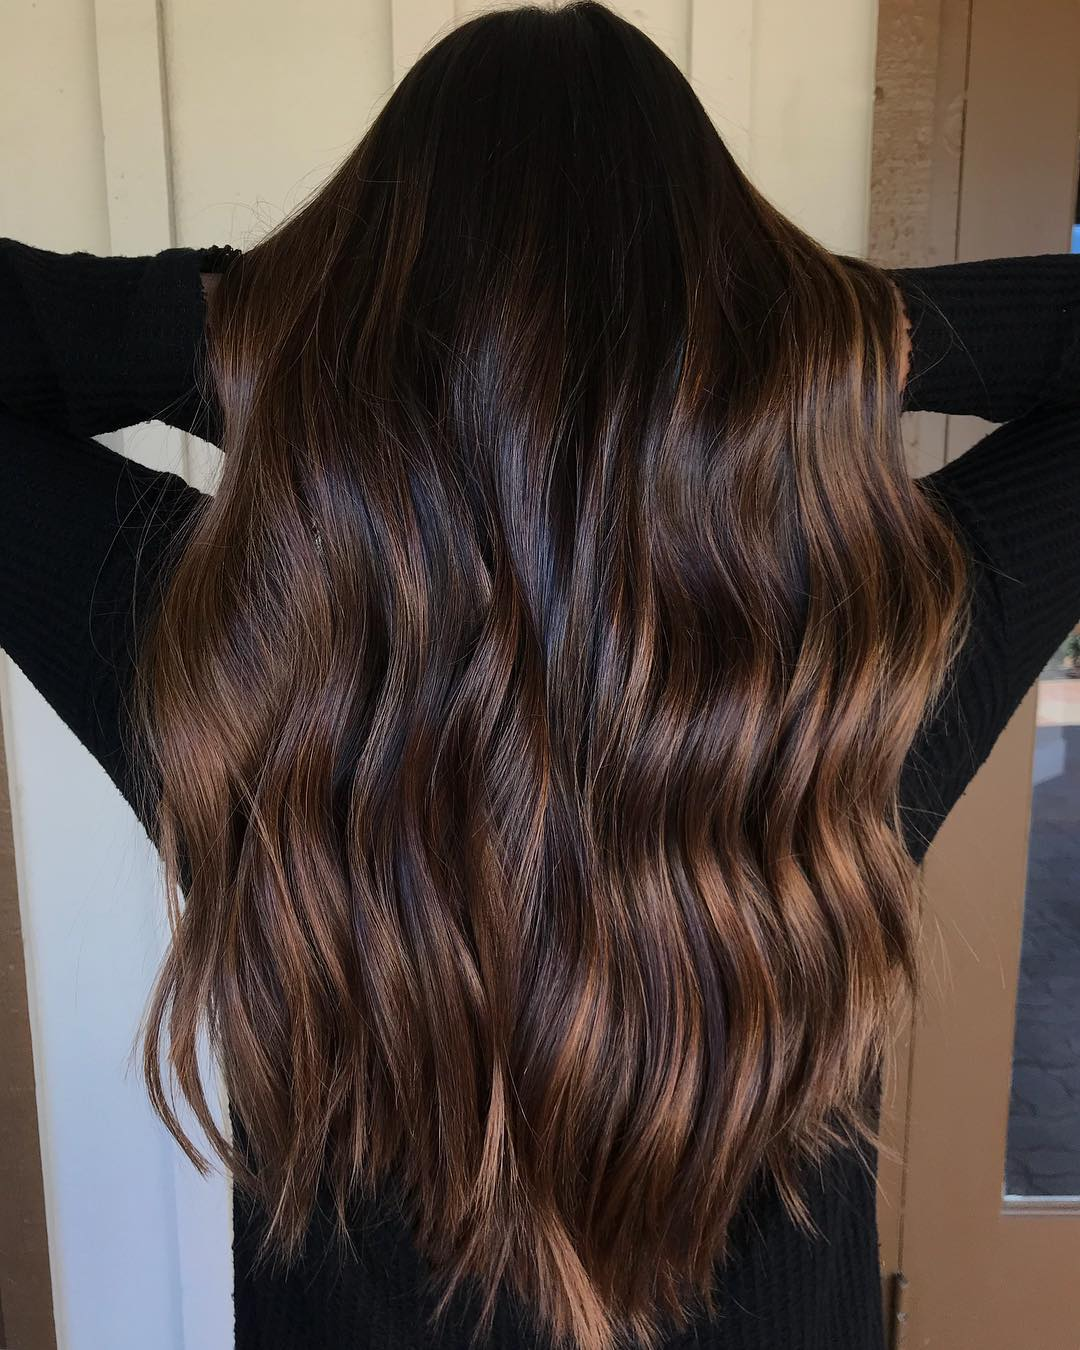 Dark Wavy Locks with Light Brown Highlights